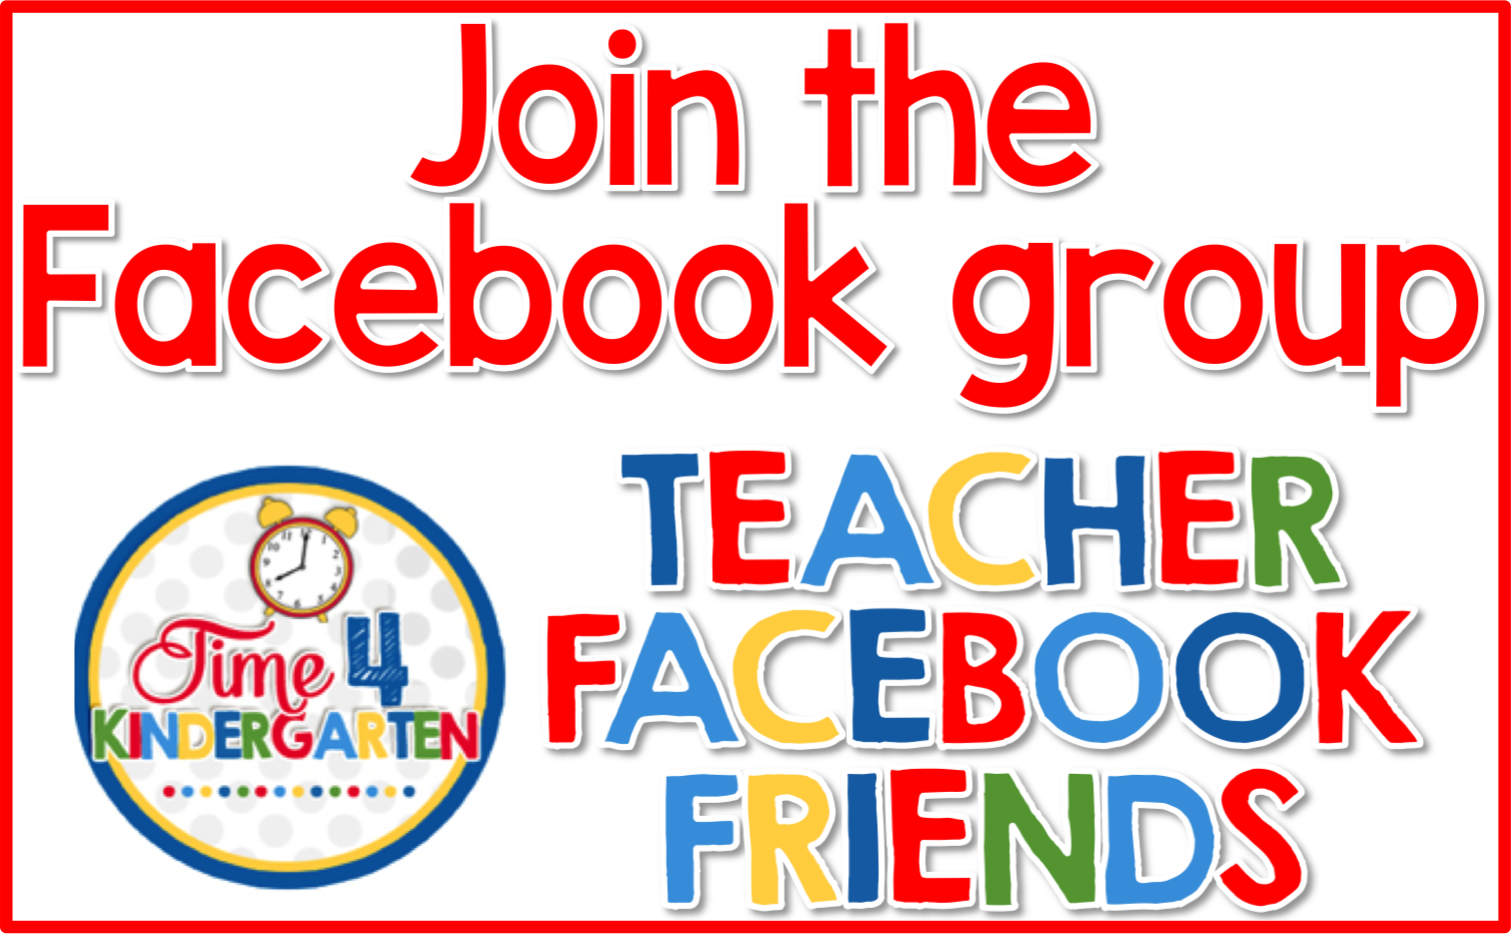 Join The Facebook Group For Early Childhood Educators And